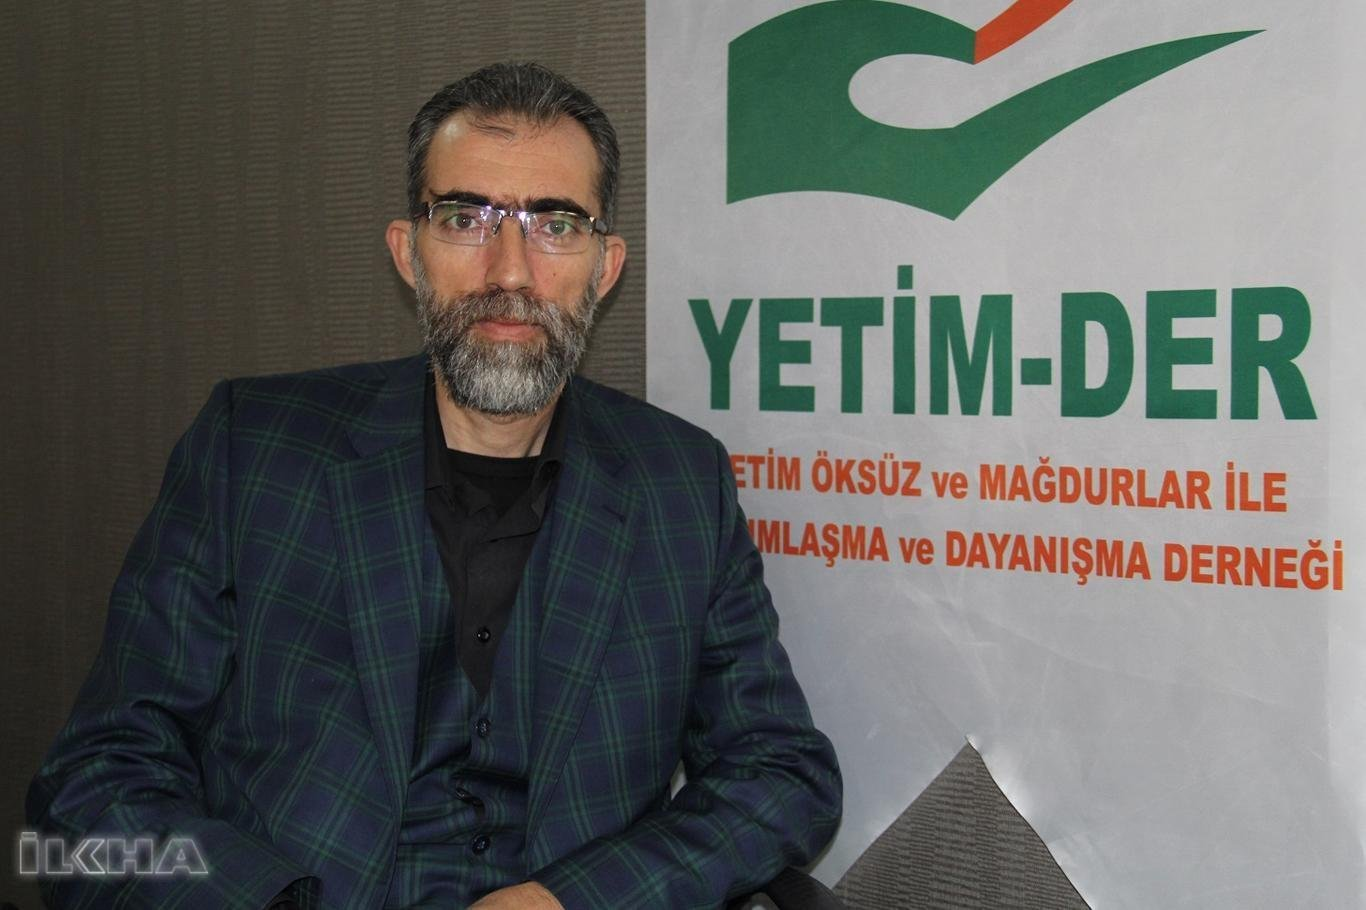 Orphan Association will marry 22 couples in Diyarbakır